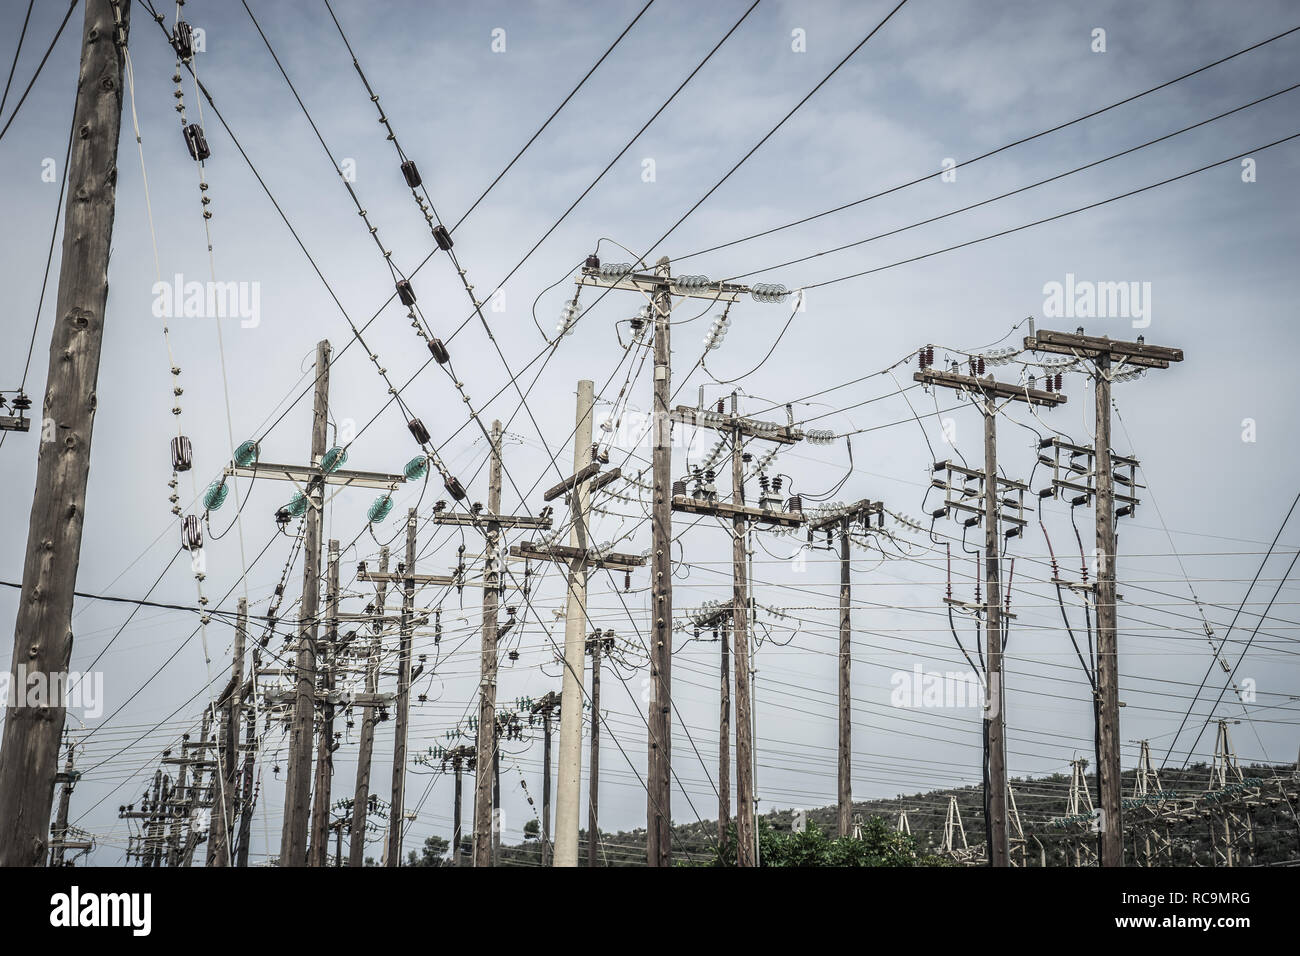 Electric Power tower - Stock Image